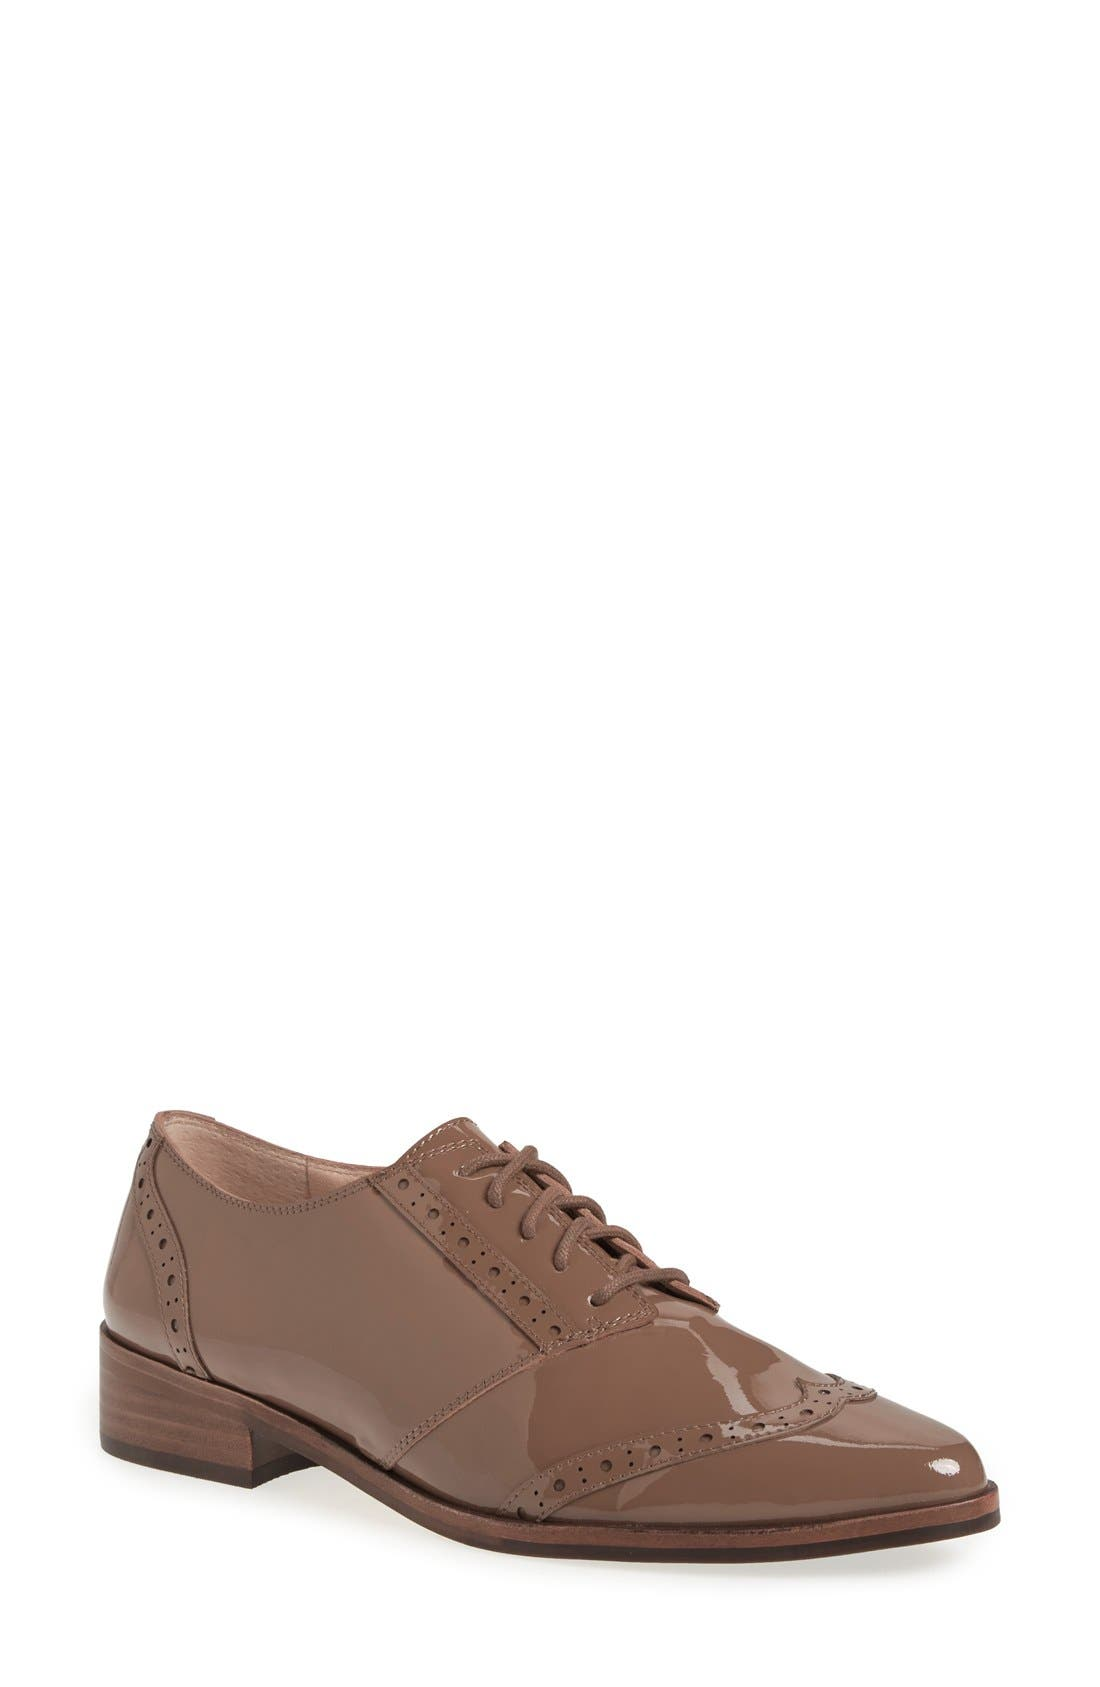 Main Image - Louise et Cie 'Adelise' Oxford (Women) (Nordstrom Exclusive)